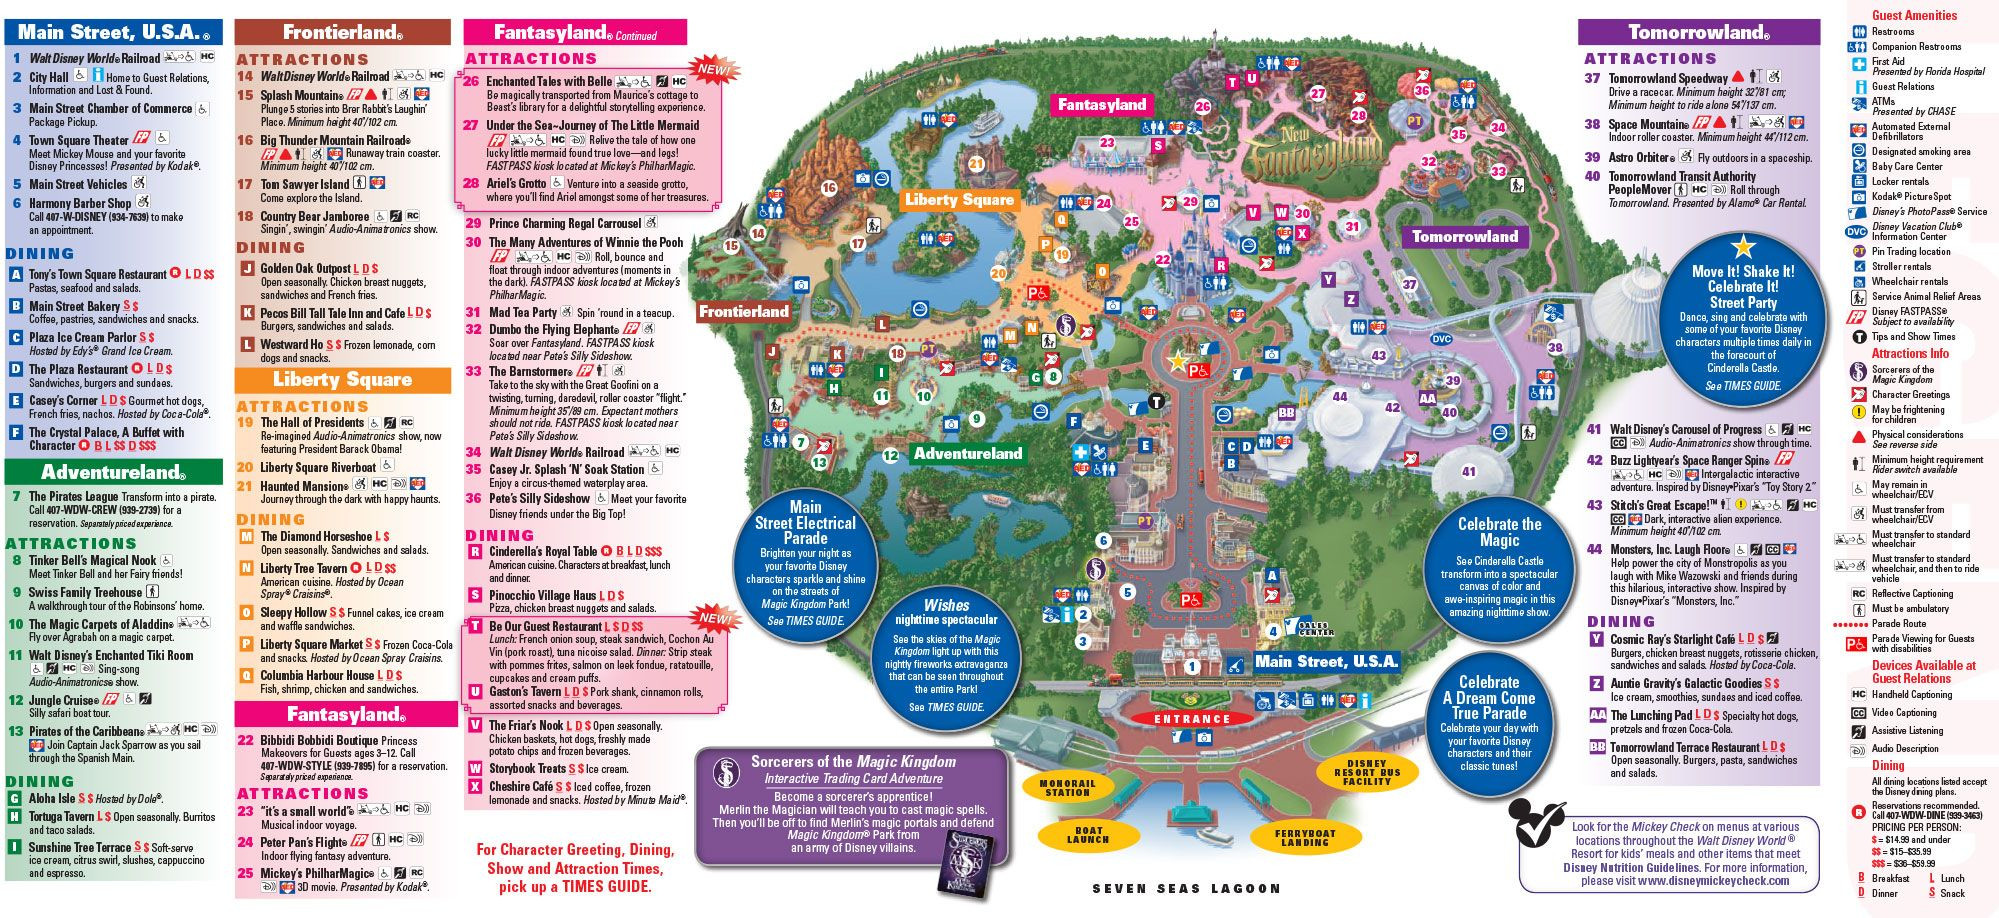 Printable Map Epcot New Town Square Theater This Is The Very First Building To The Far